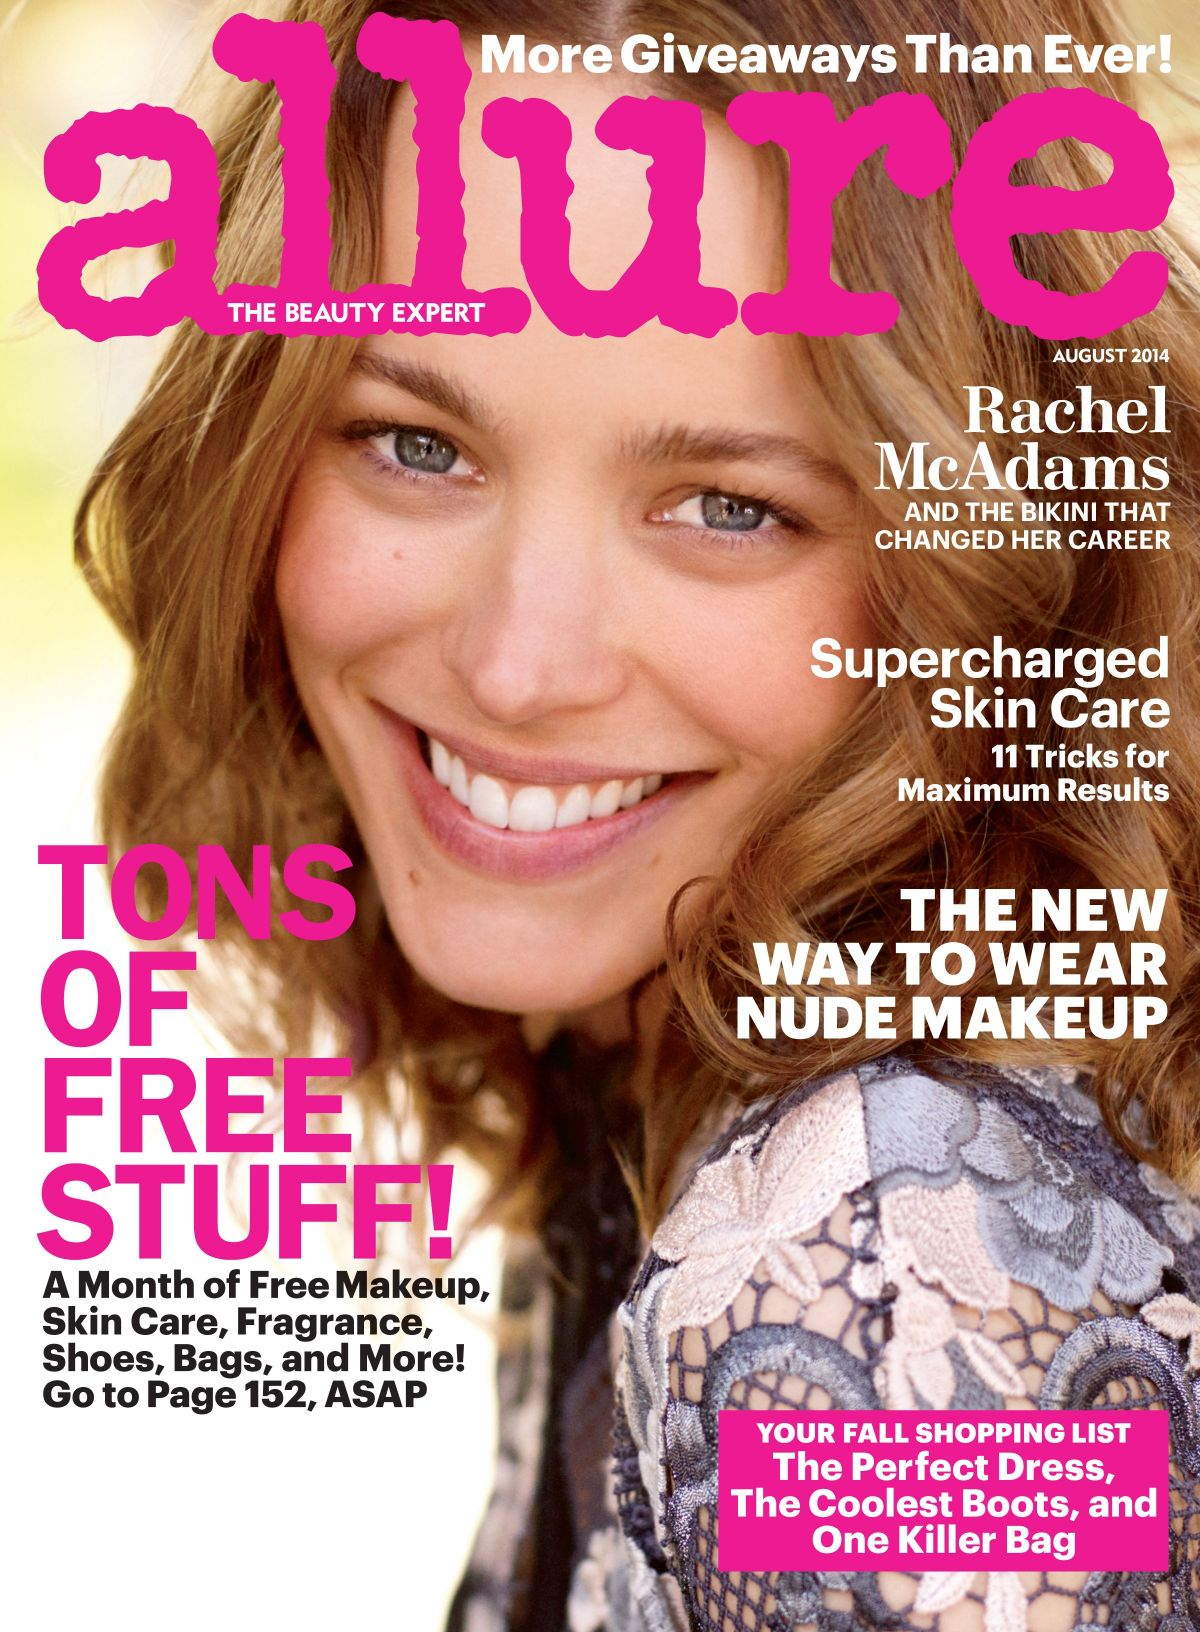 RACHEL MCADAMS on the COver of Allure Magazine, August 2014 Issue